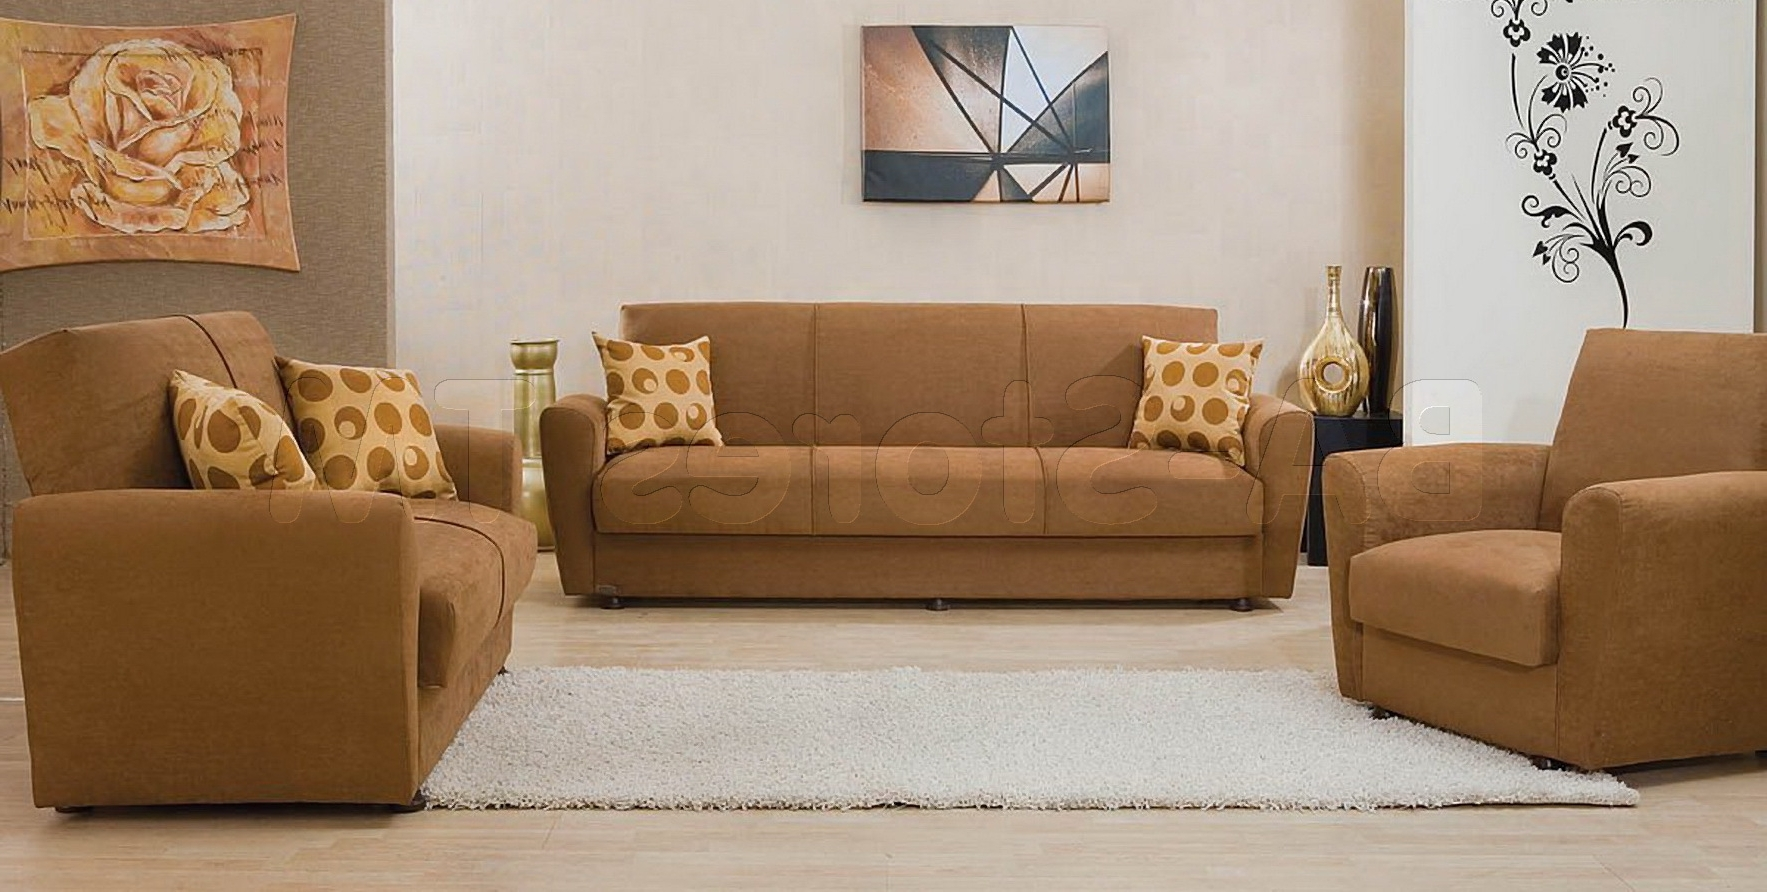 Well Known Casual Sofas And Chairs – Fjellkjeden Throughout Sofas And Chairs (View 14 of 15)